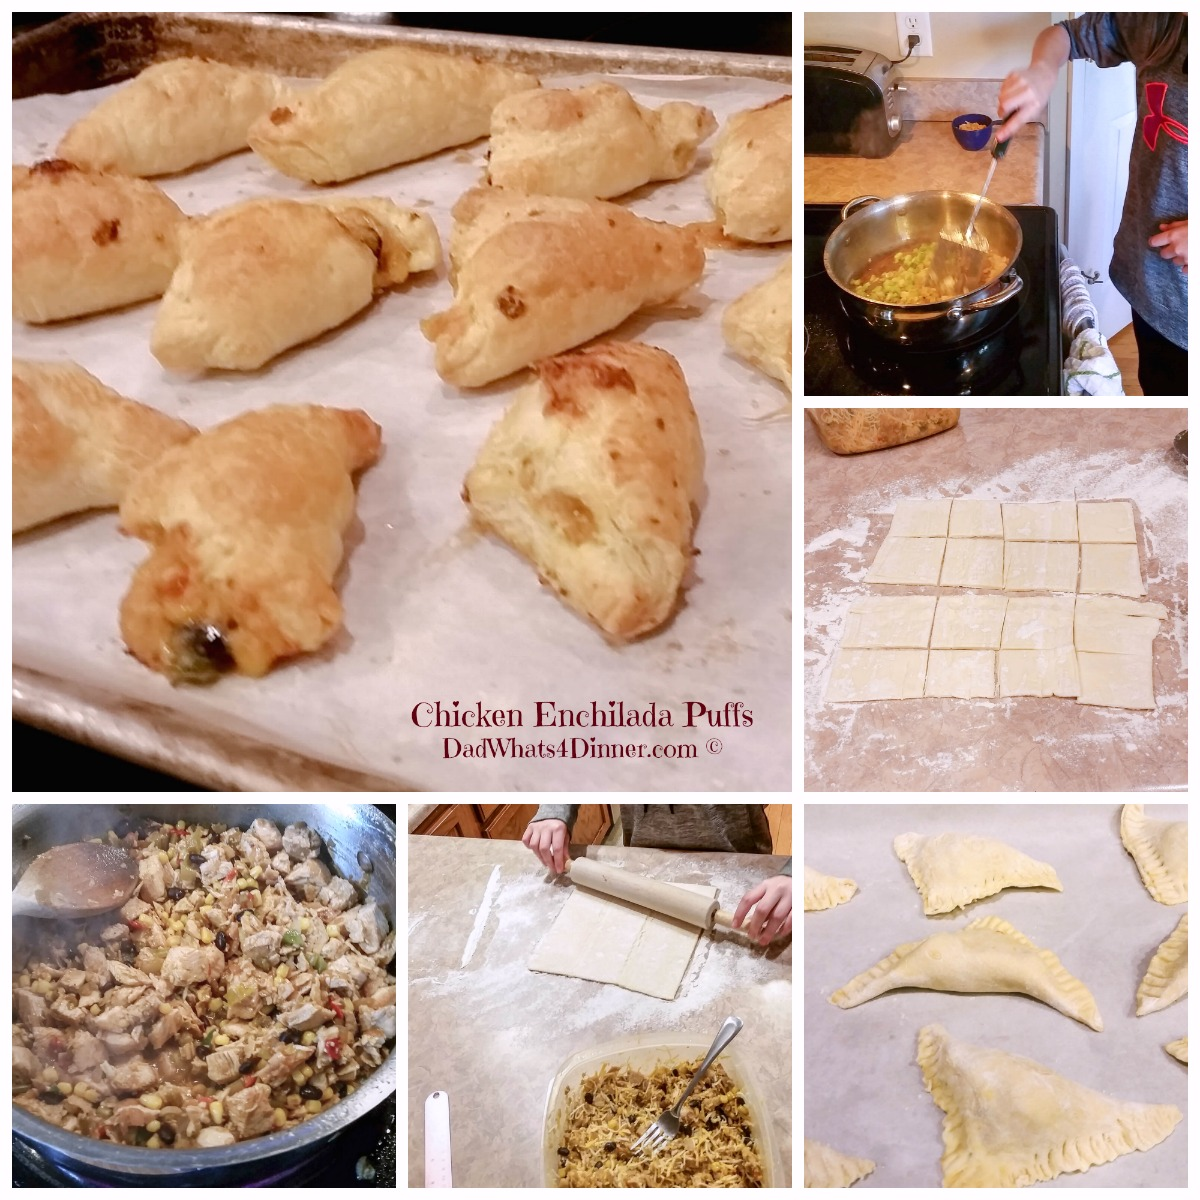 Chicken Enchilada Puffs | https://dadwhats4dinner.com